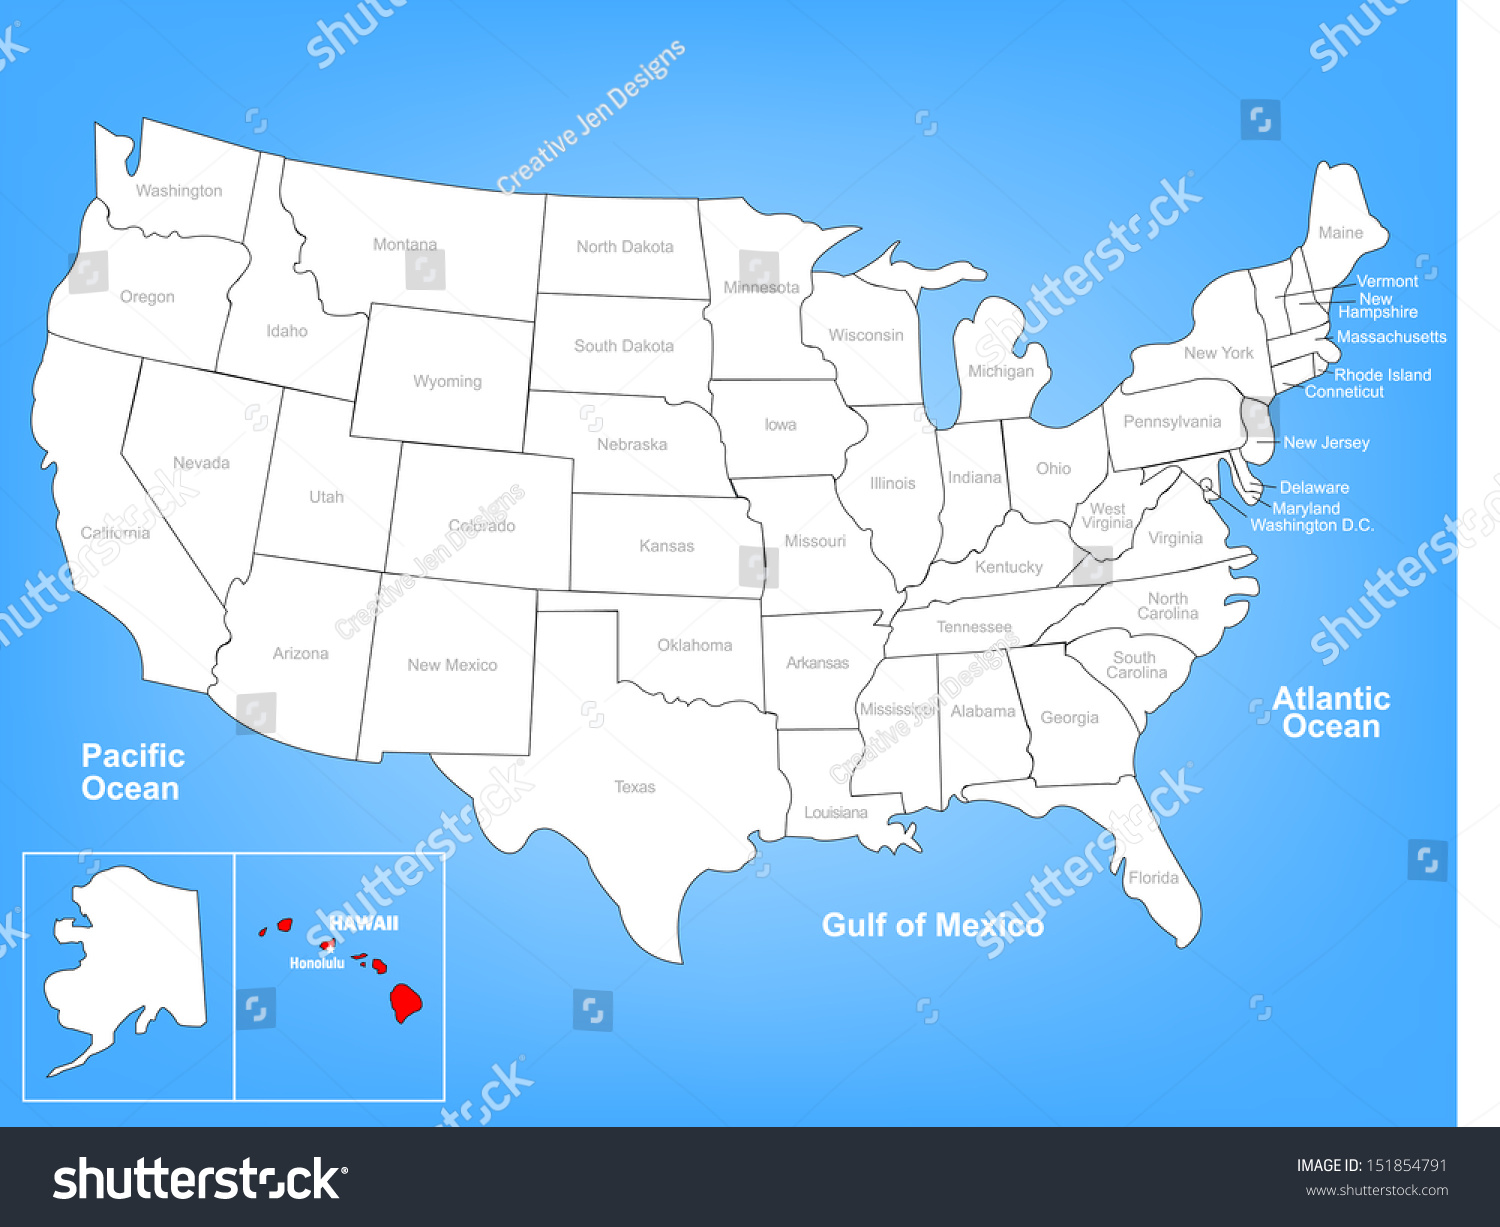 Map Of The United States And Hawaii Map Of The United States And - United states map hawaii